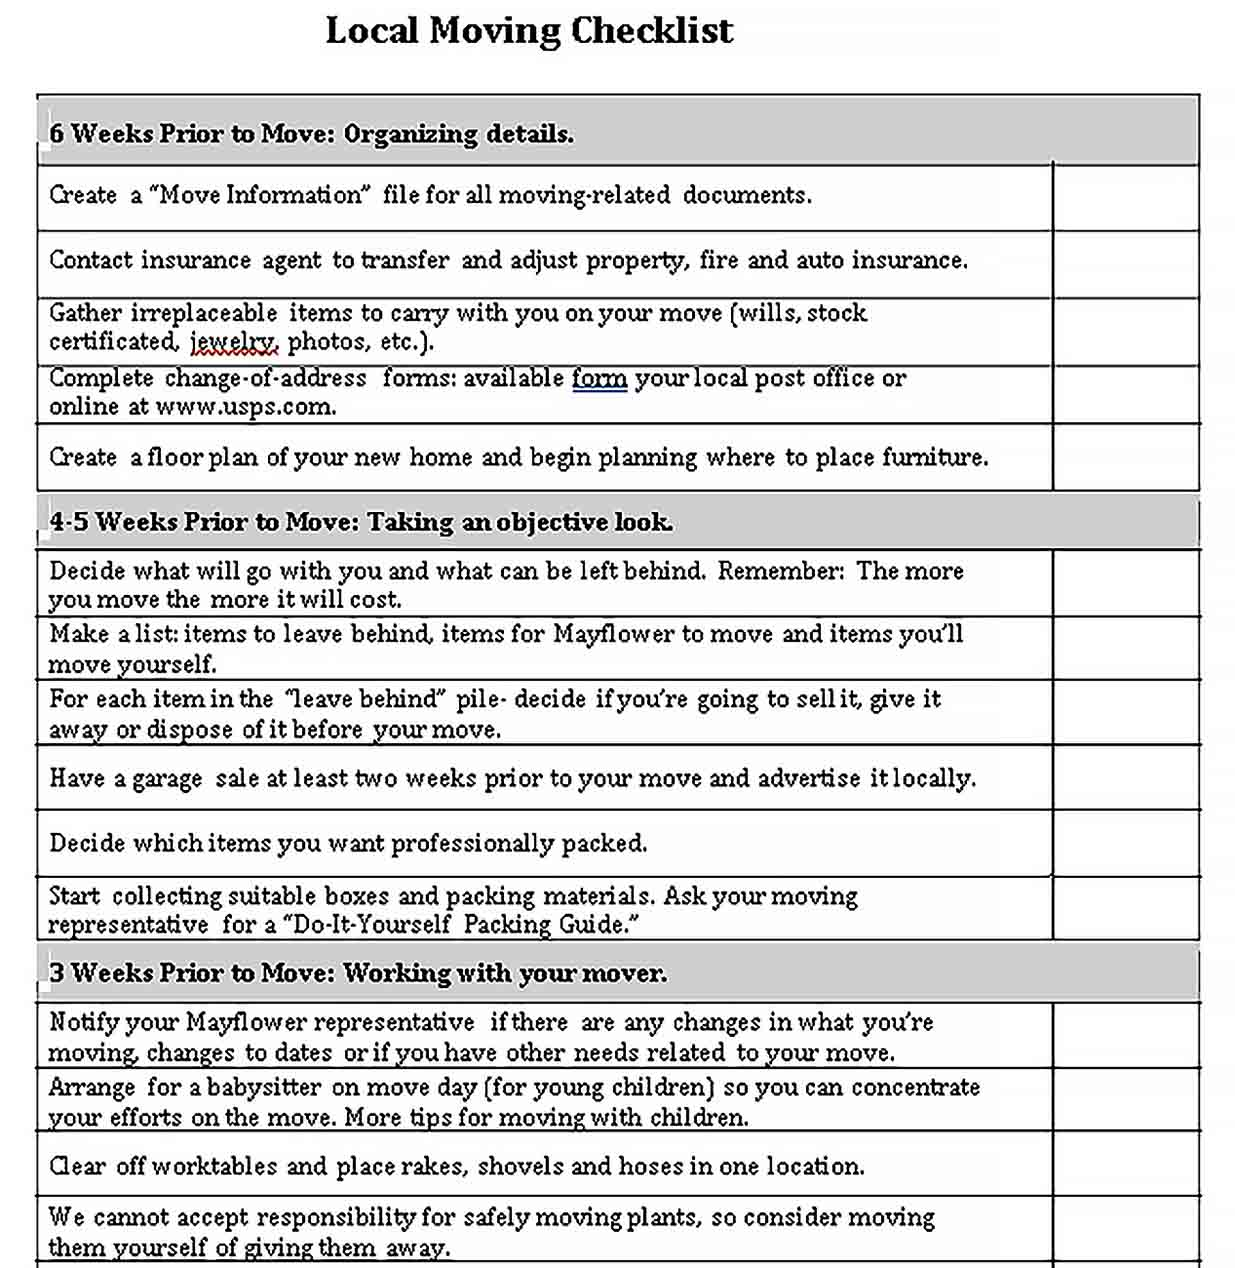 Template Local Moving Checklist Template